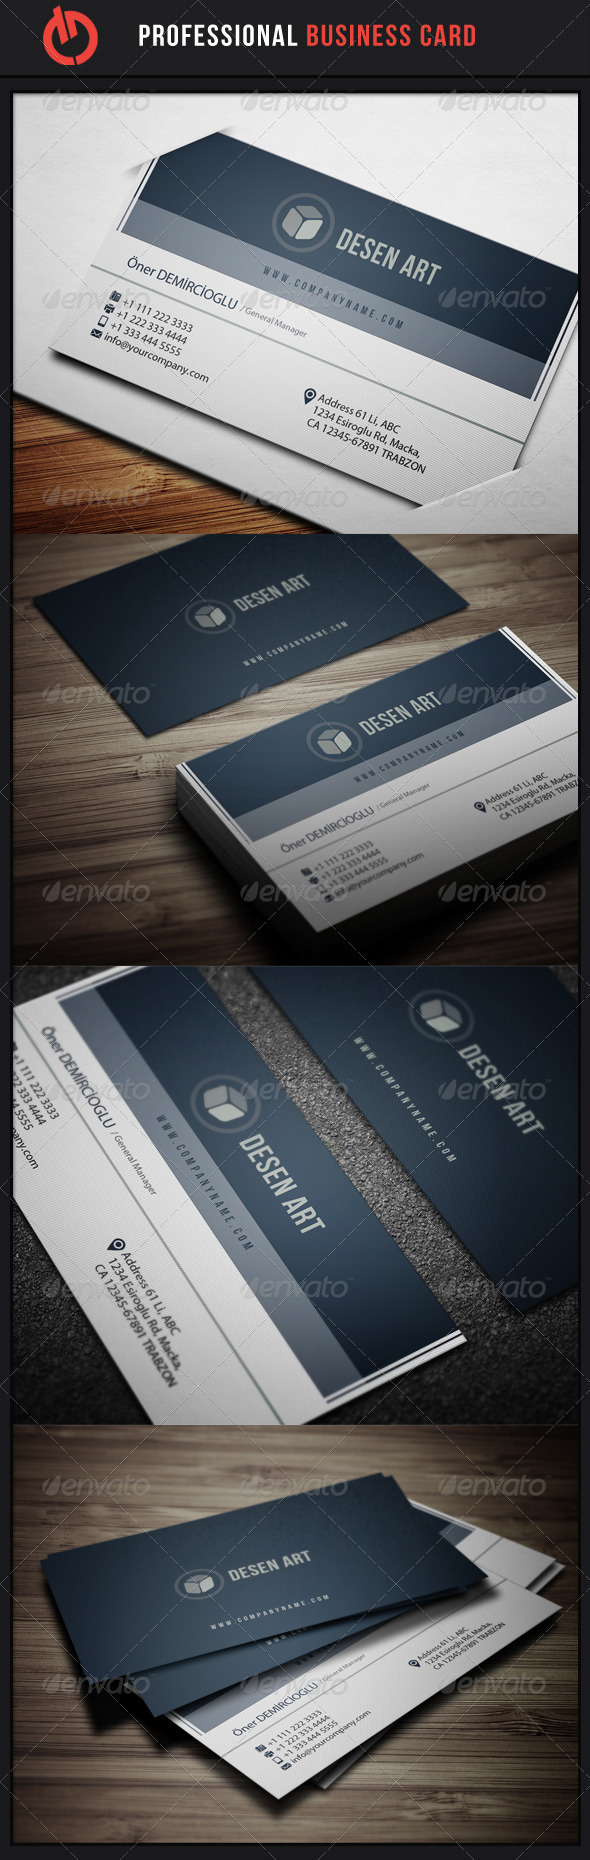 GraphicRiver Professional Business Card 2 3382290